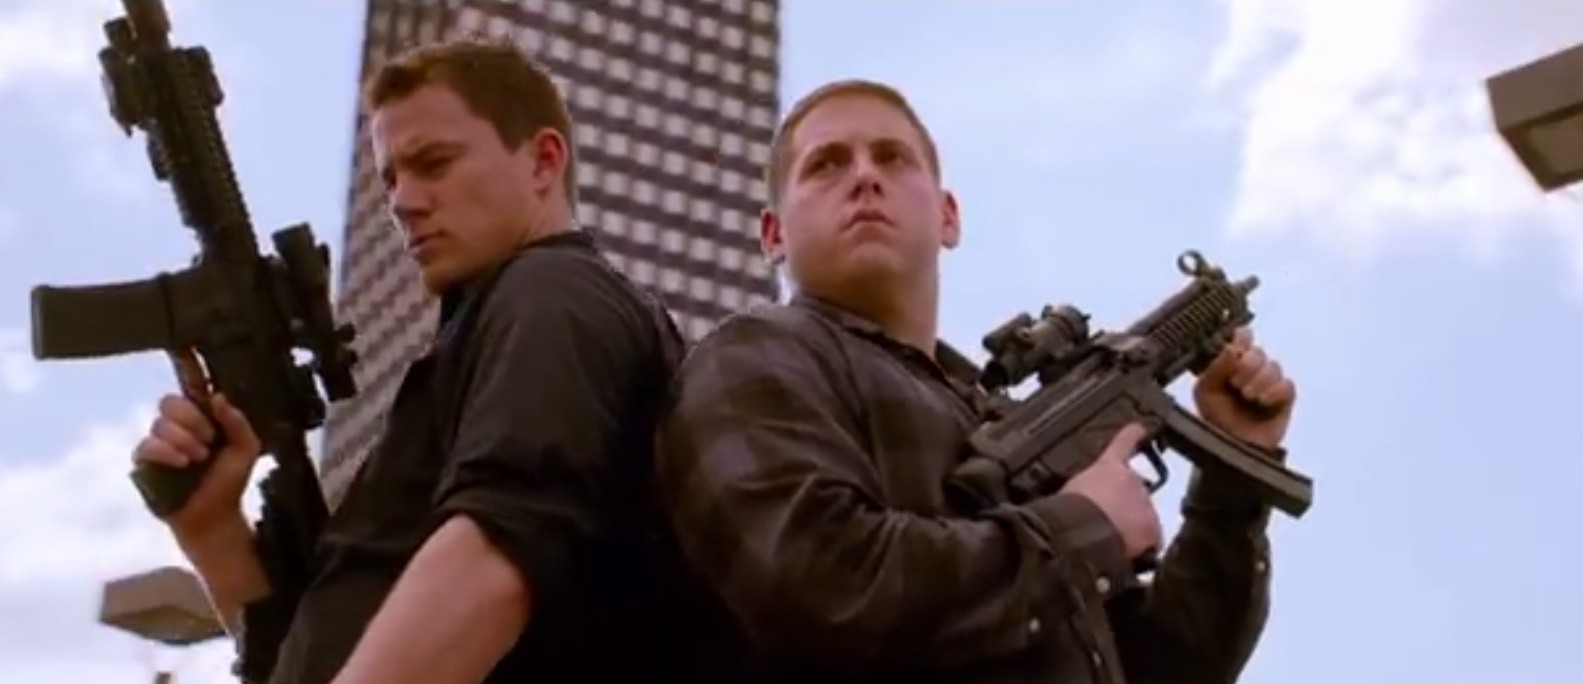 Channing Tatum and Jonah Hill compare themselves to Rihanna and Chris Brown in new 22 Jump Street trailer